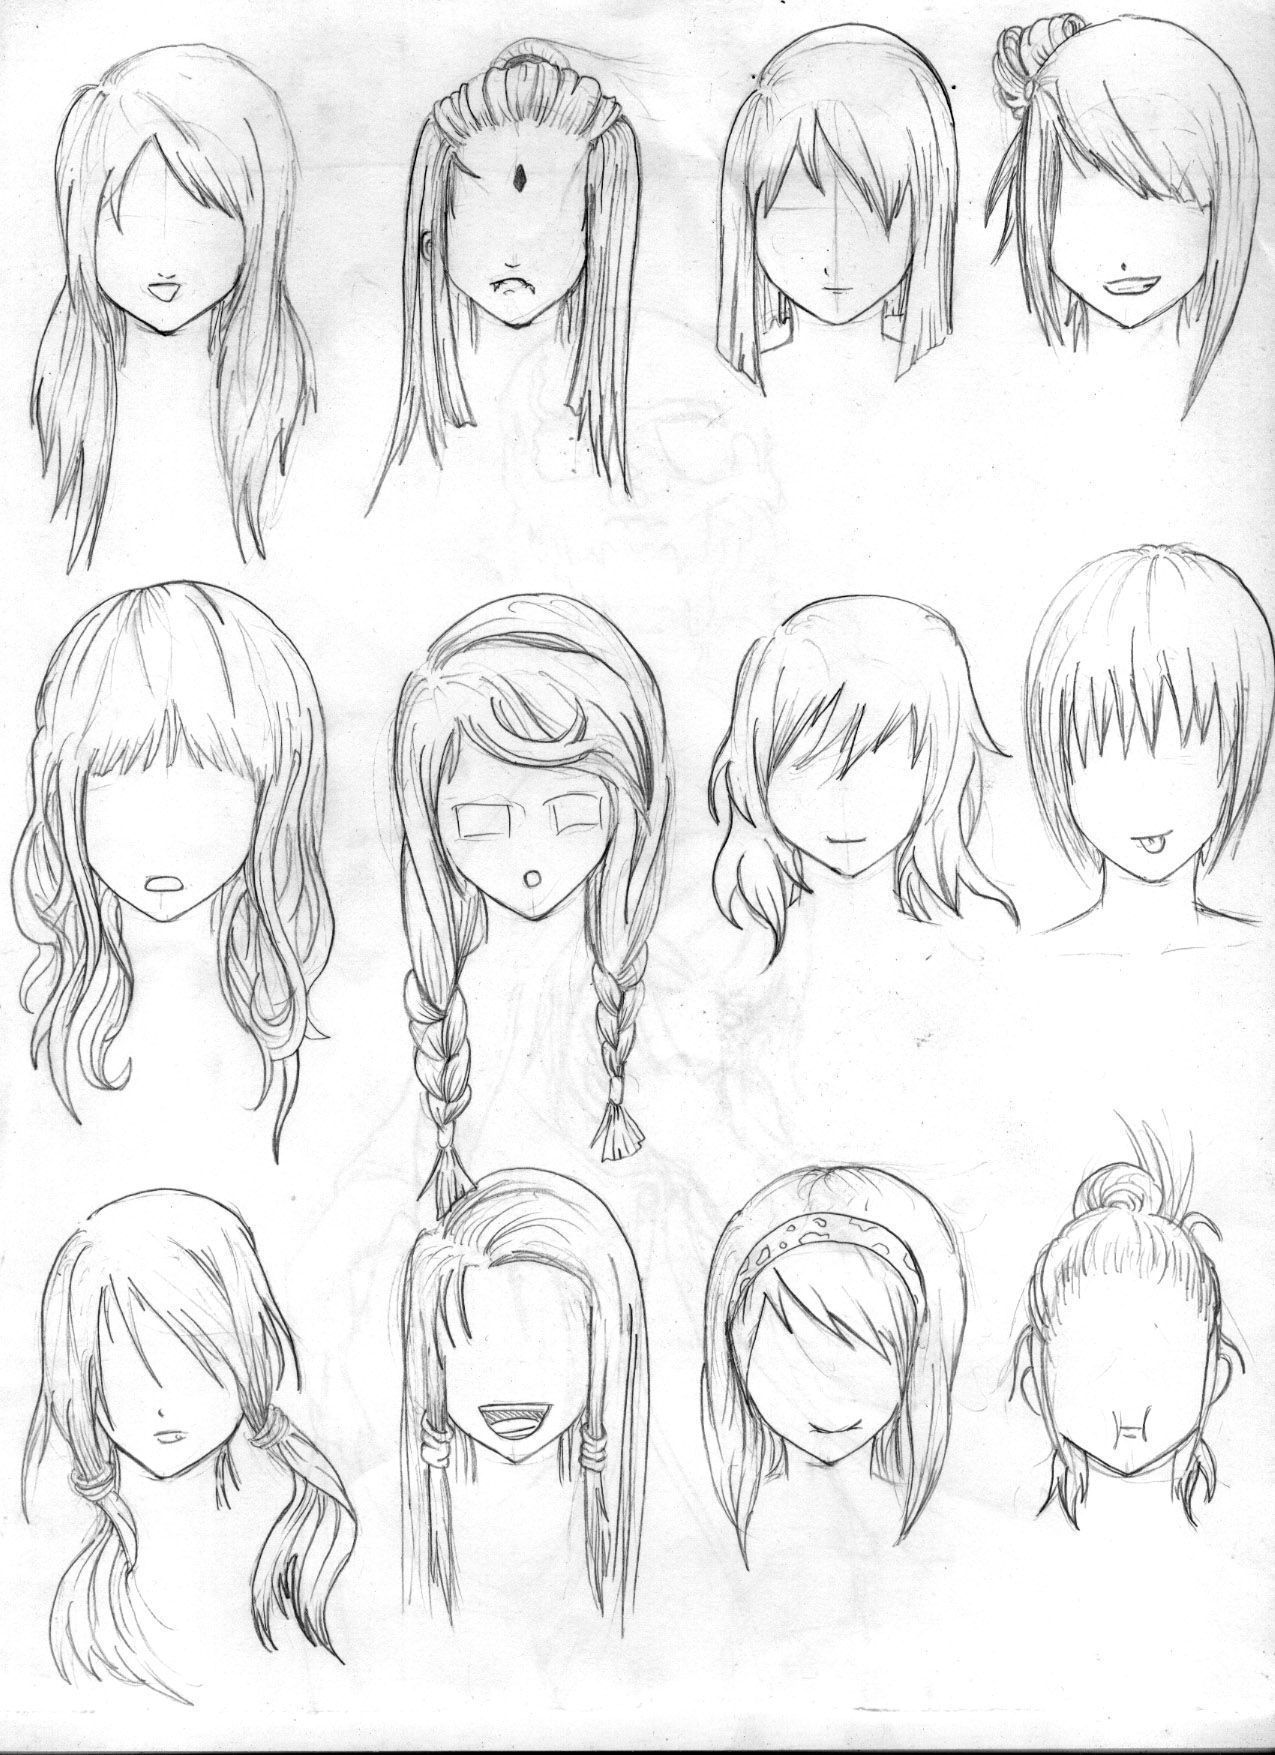 28 Albums Of Easy Drawings Of Girls With Short Hair Explore Tomboyhairstyles 28 Albums Of Easy Drawings Of Gi In 2020 Short Hair Drawing How To Draw Hair Anime Hair